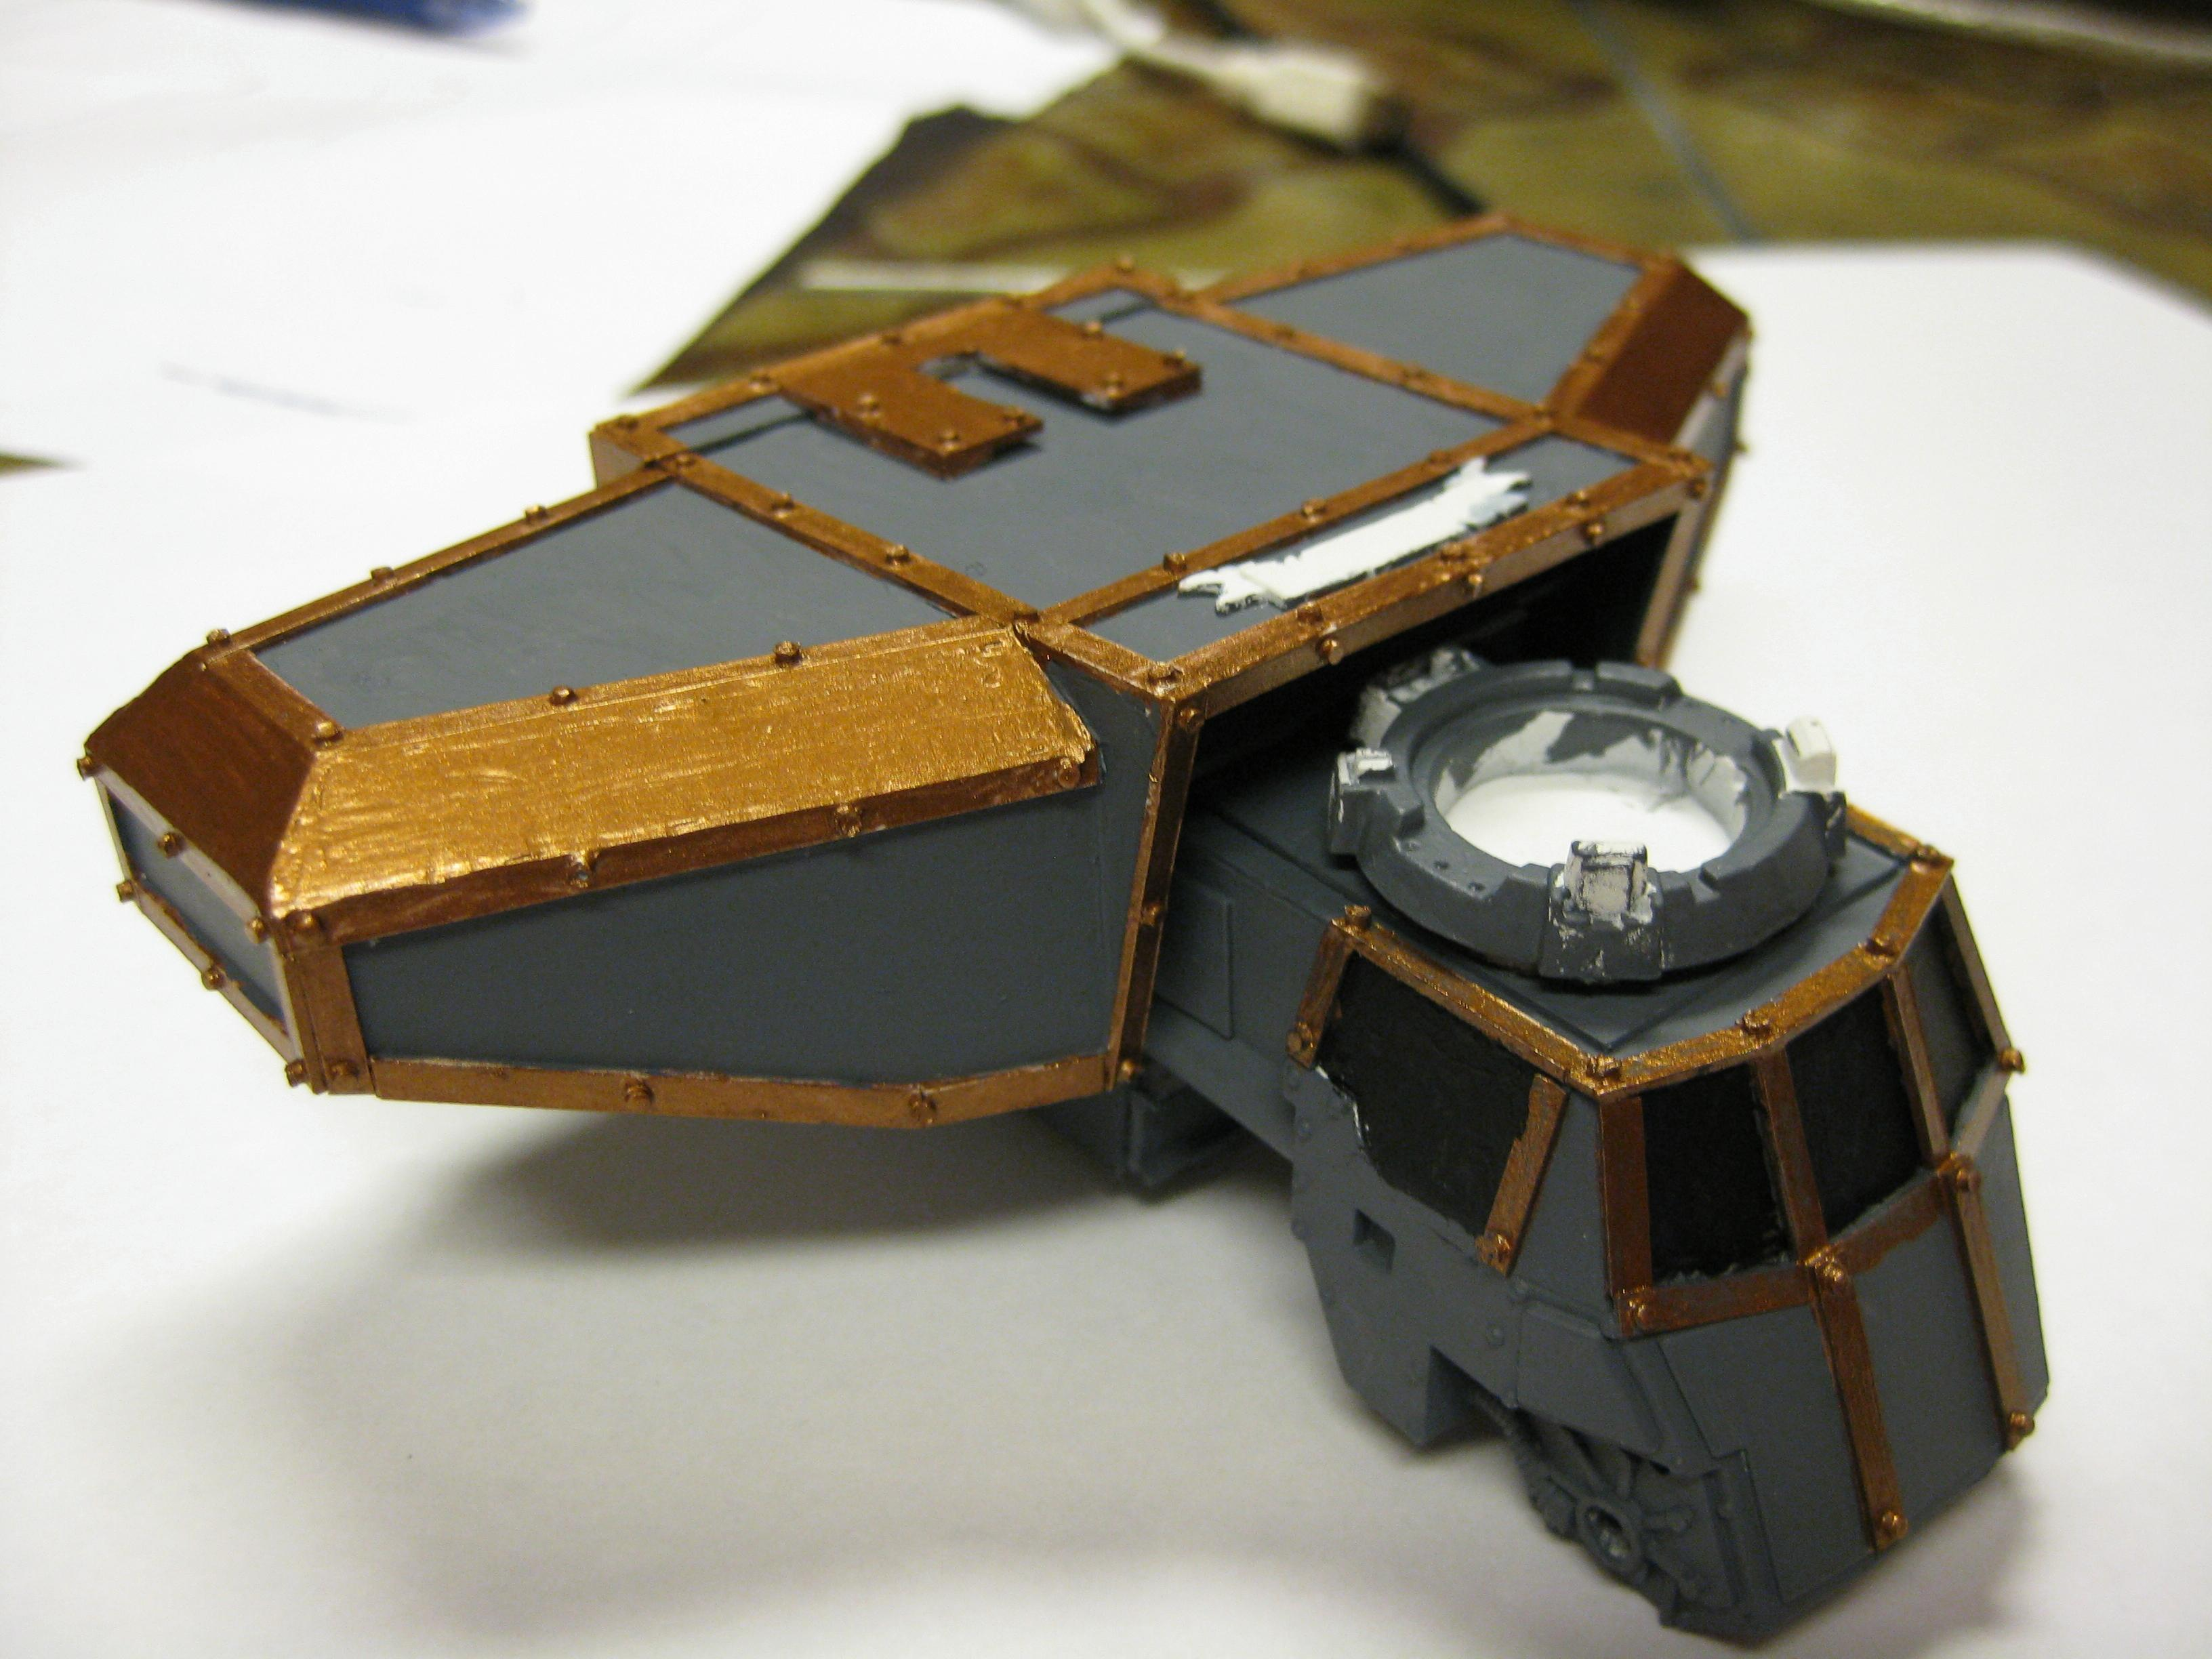 Overview of the carapace